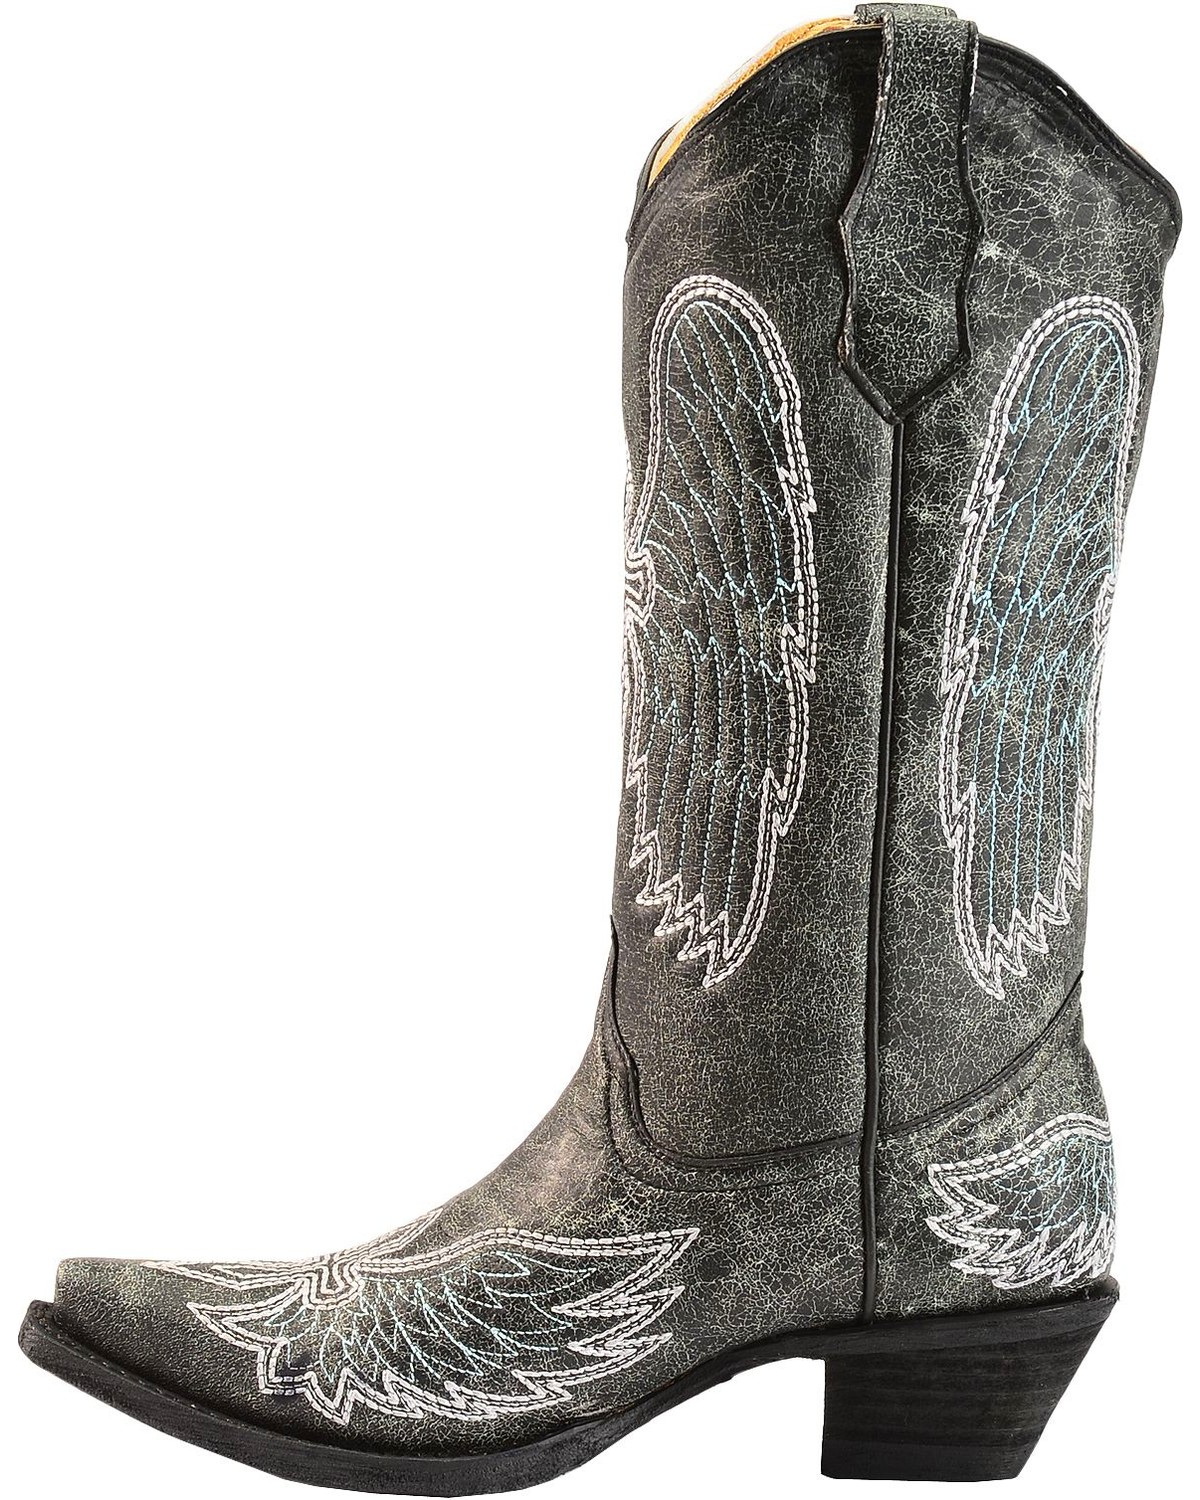 Buy circle g cowgirl boots cheap,up to 55% Discounts